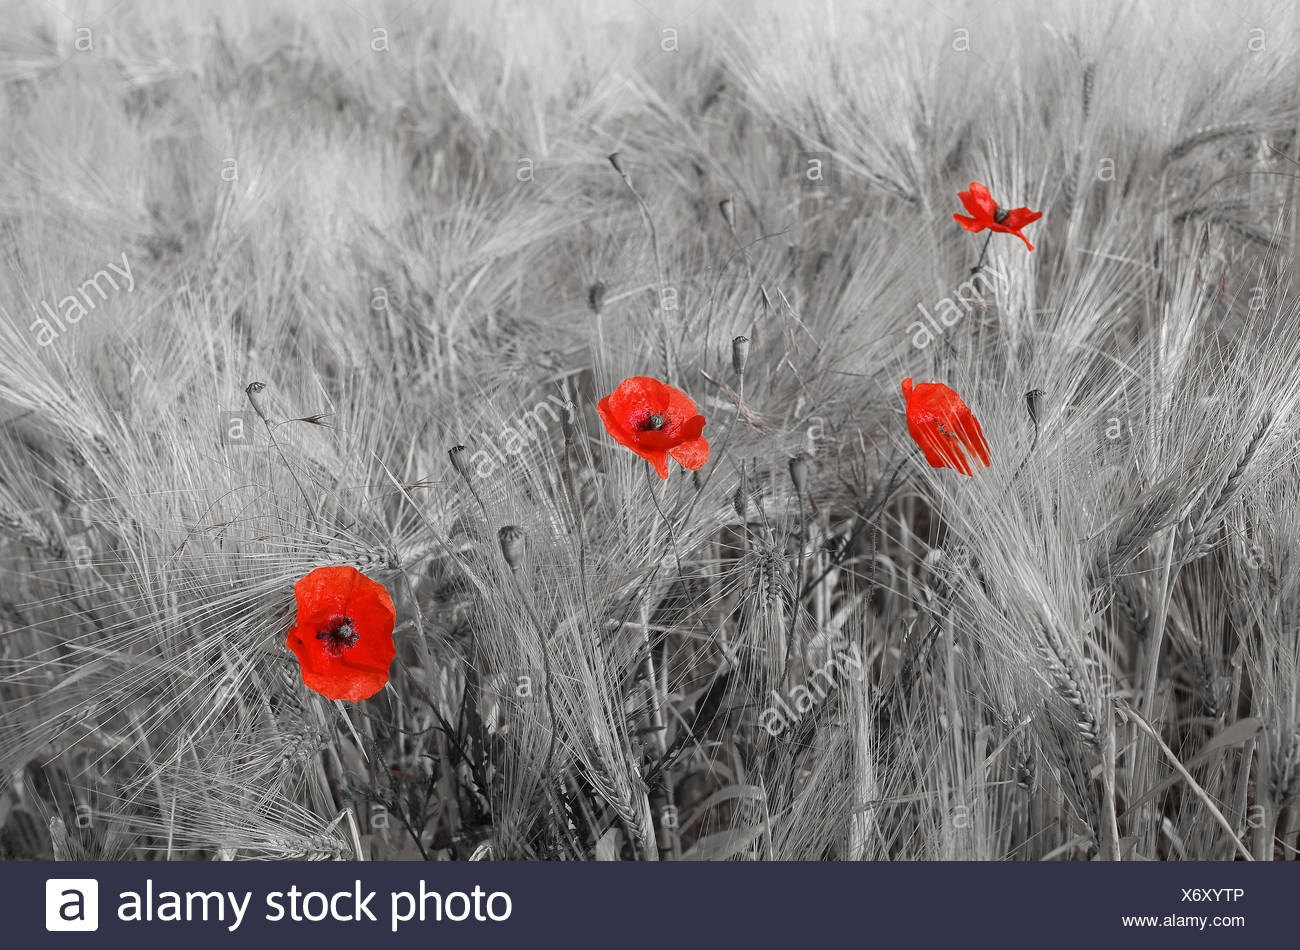 Blooming poppies in a wheat field - France - Stock Image